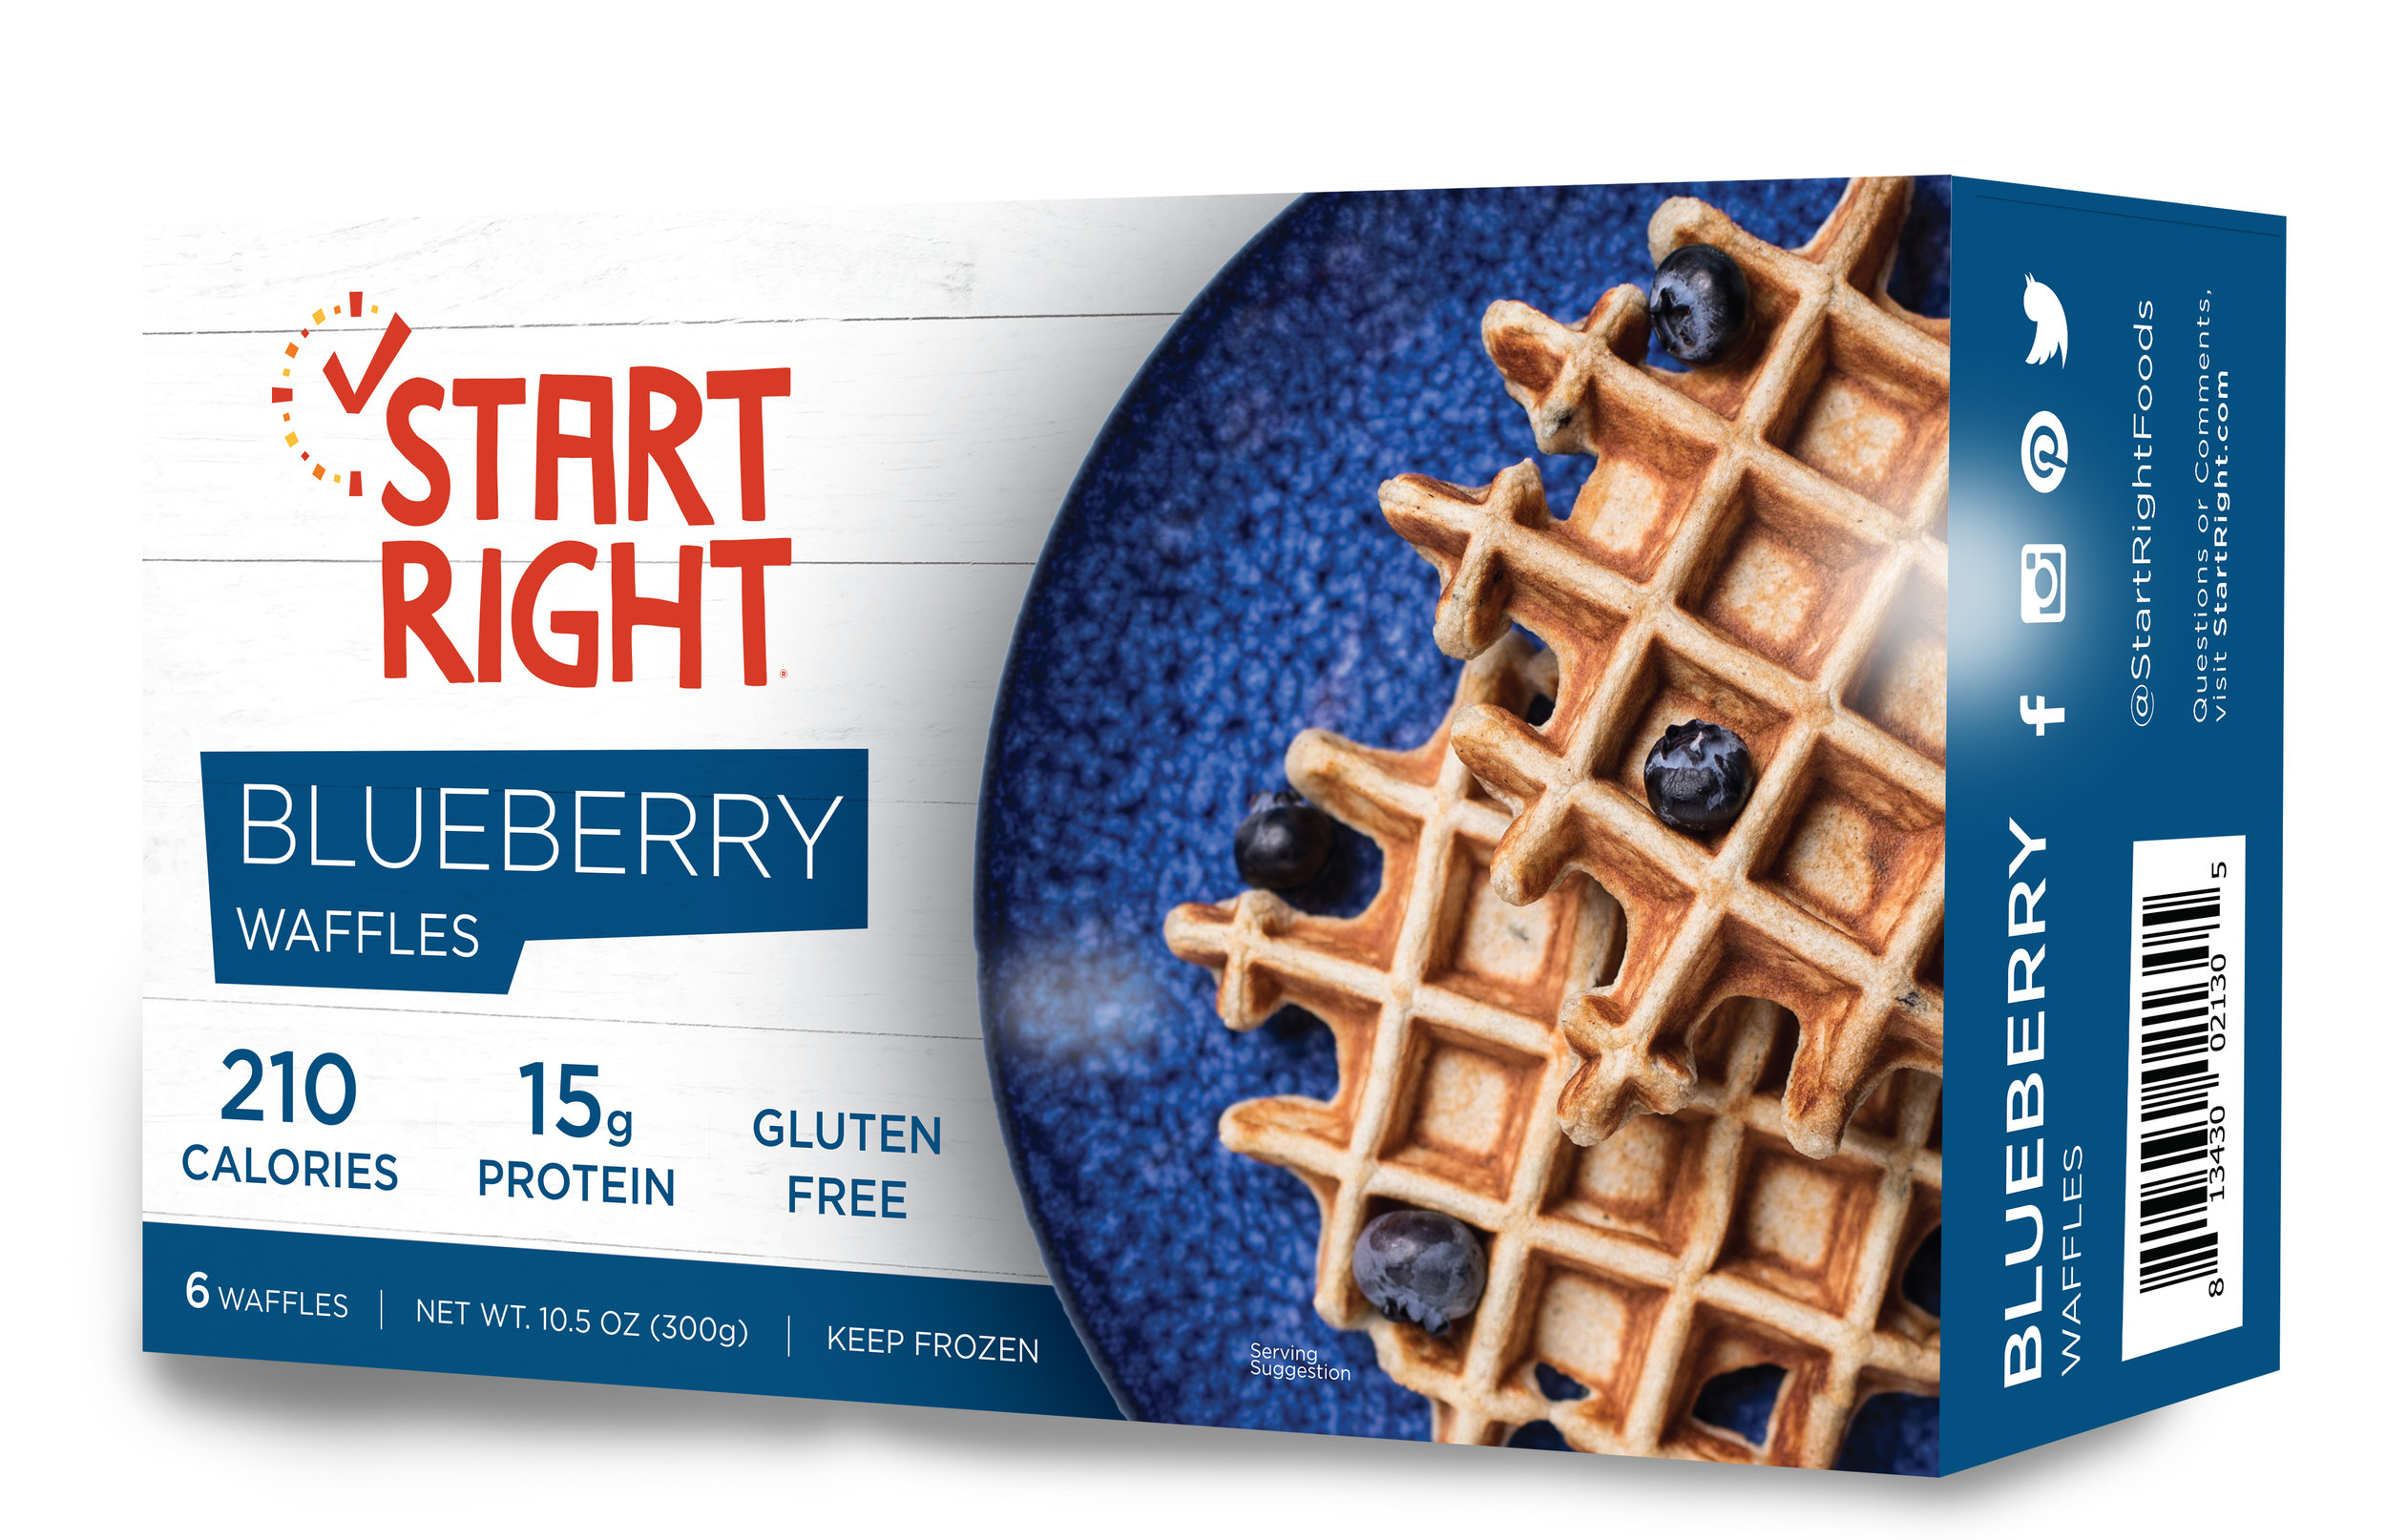 Start Right, Belgian Waffles, frozen waffles, toaster waffles, high protein waffles, protein waffles, cinnamon waffles, blueberry waffles, gluten free waffles, gluten free waffle recipe, high protein breakfast, high protein breakfast options, easy breakfast